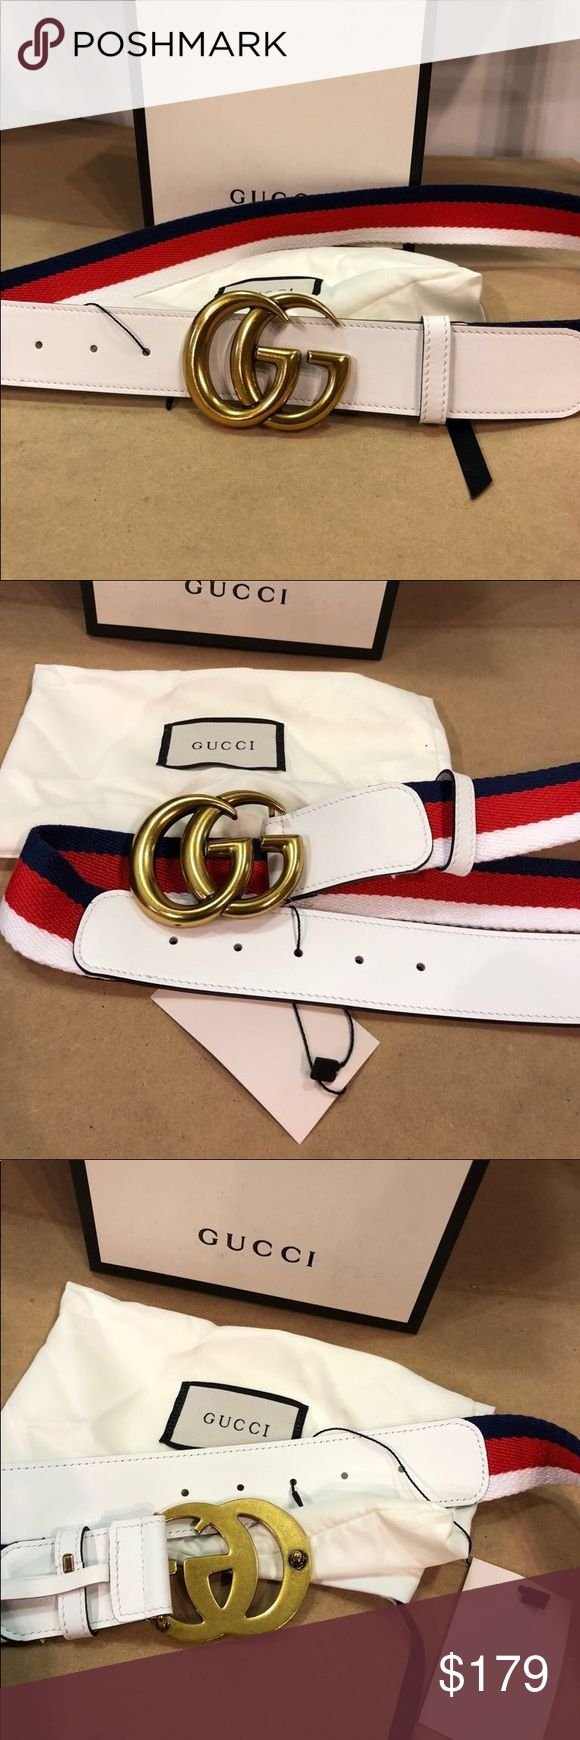 Brand New Gucci Belt Blue Red White 100% Authentic Gucci Belt!  Comes with box dust bag and original tags  Easy sizing! Just choose the size u wear in jeans  Respectable offers considered. Thank you Gucci Accessories Belts